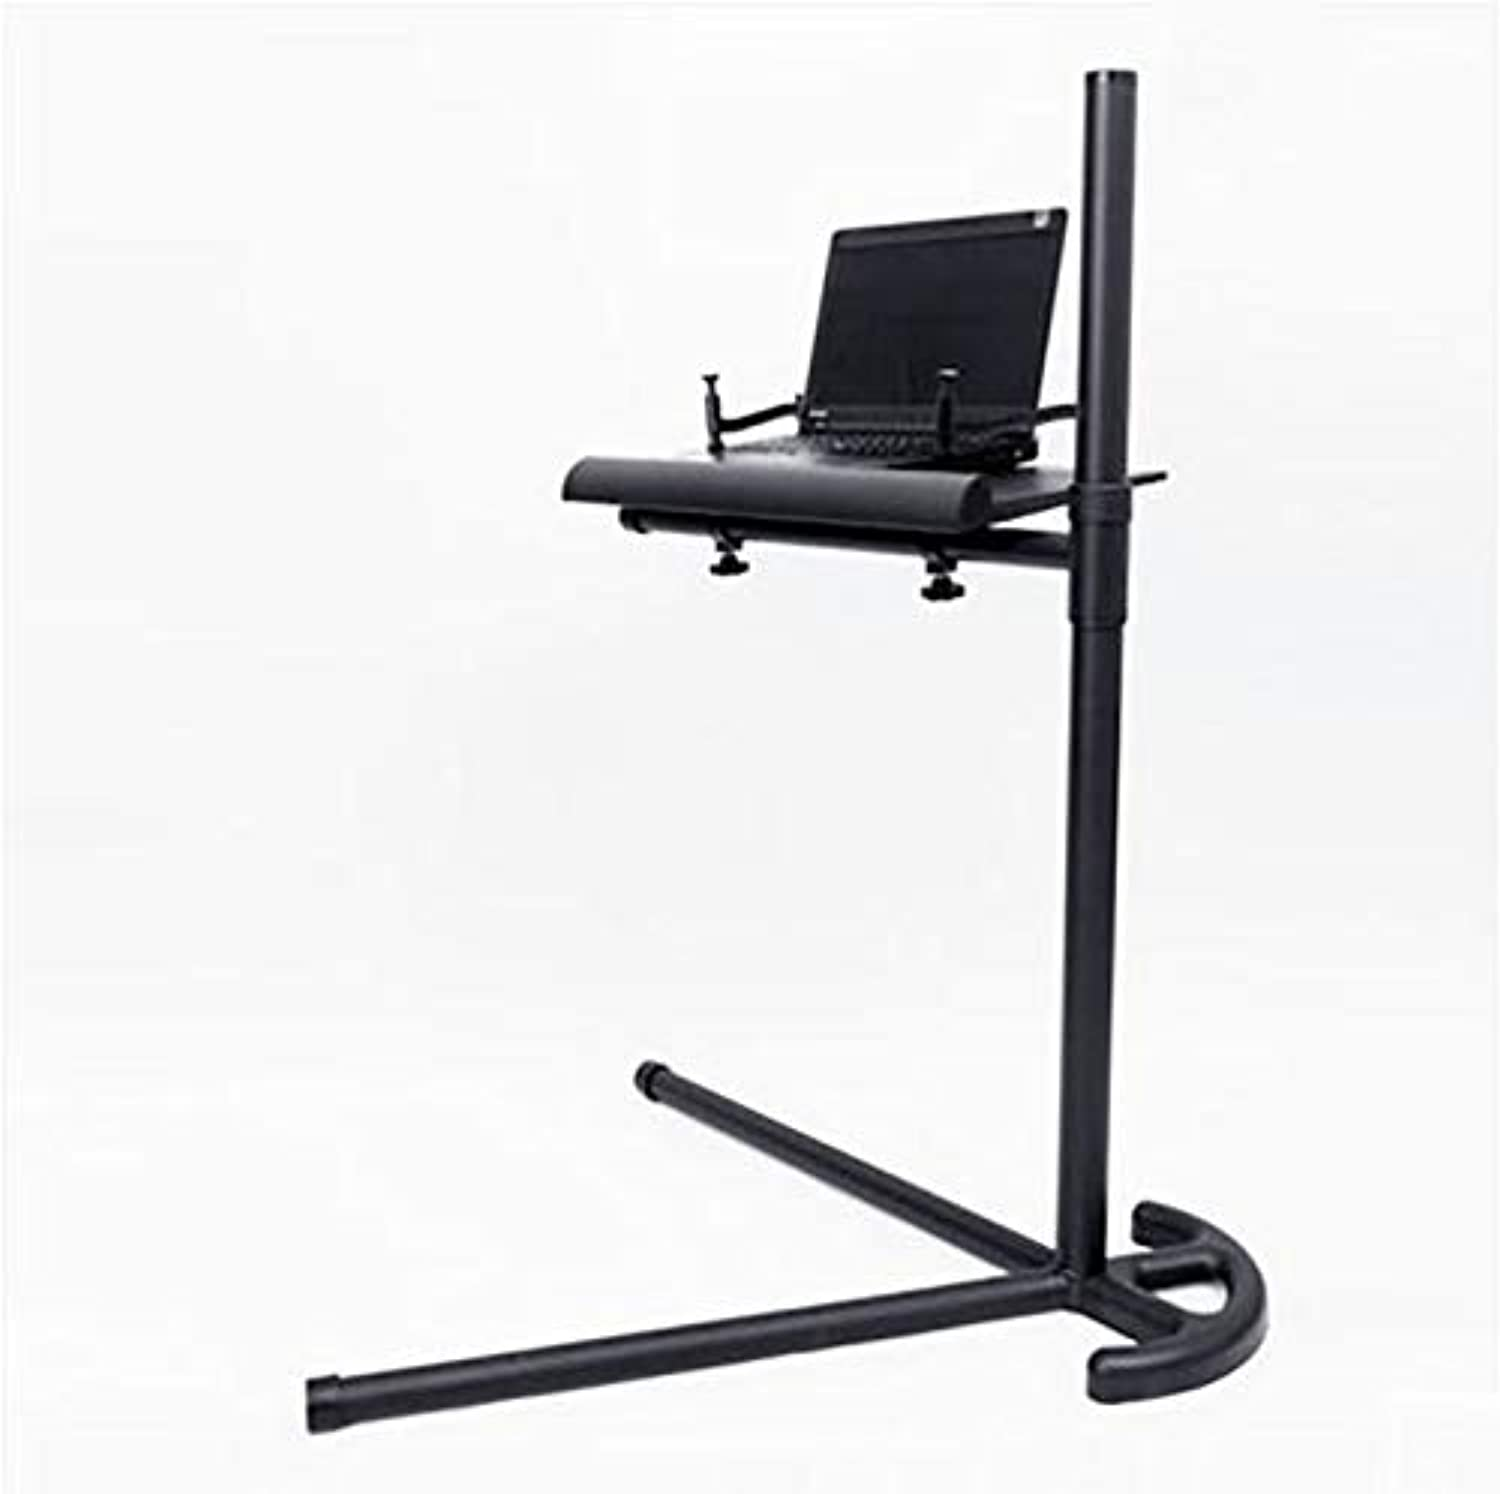 AY-Desk Lapdesks Portable Floor-Standing Computer Desk, with Heat Dissipation Adjustable Height Length May Extend, Aluminum Alloy, Suitable for Home Office Dormitories (color   Black)